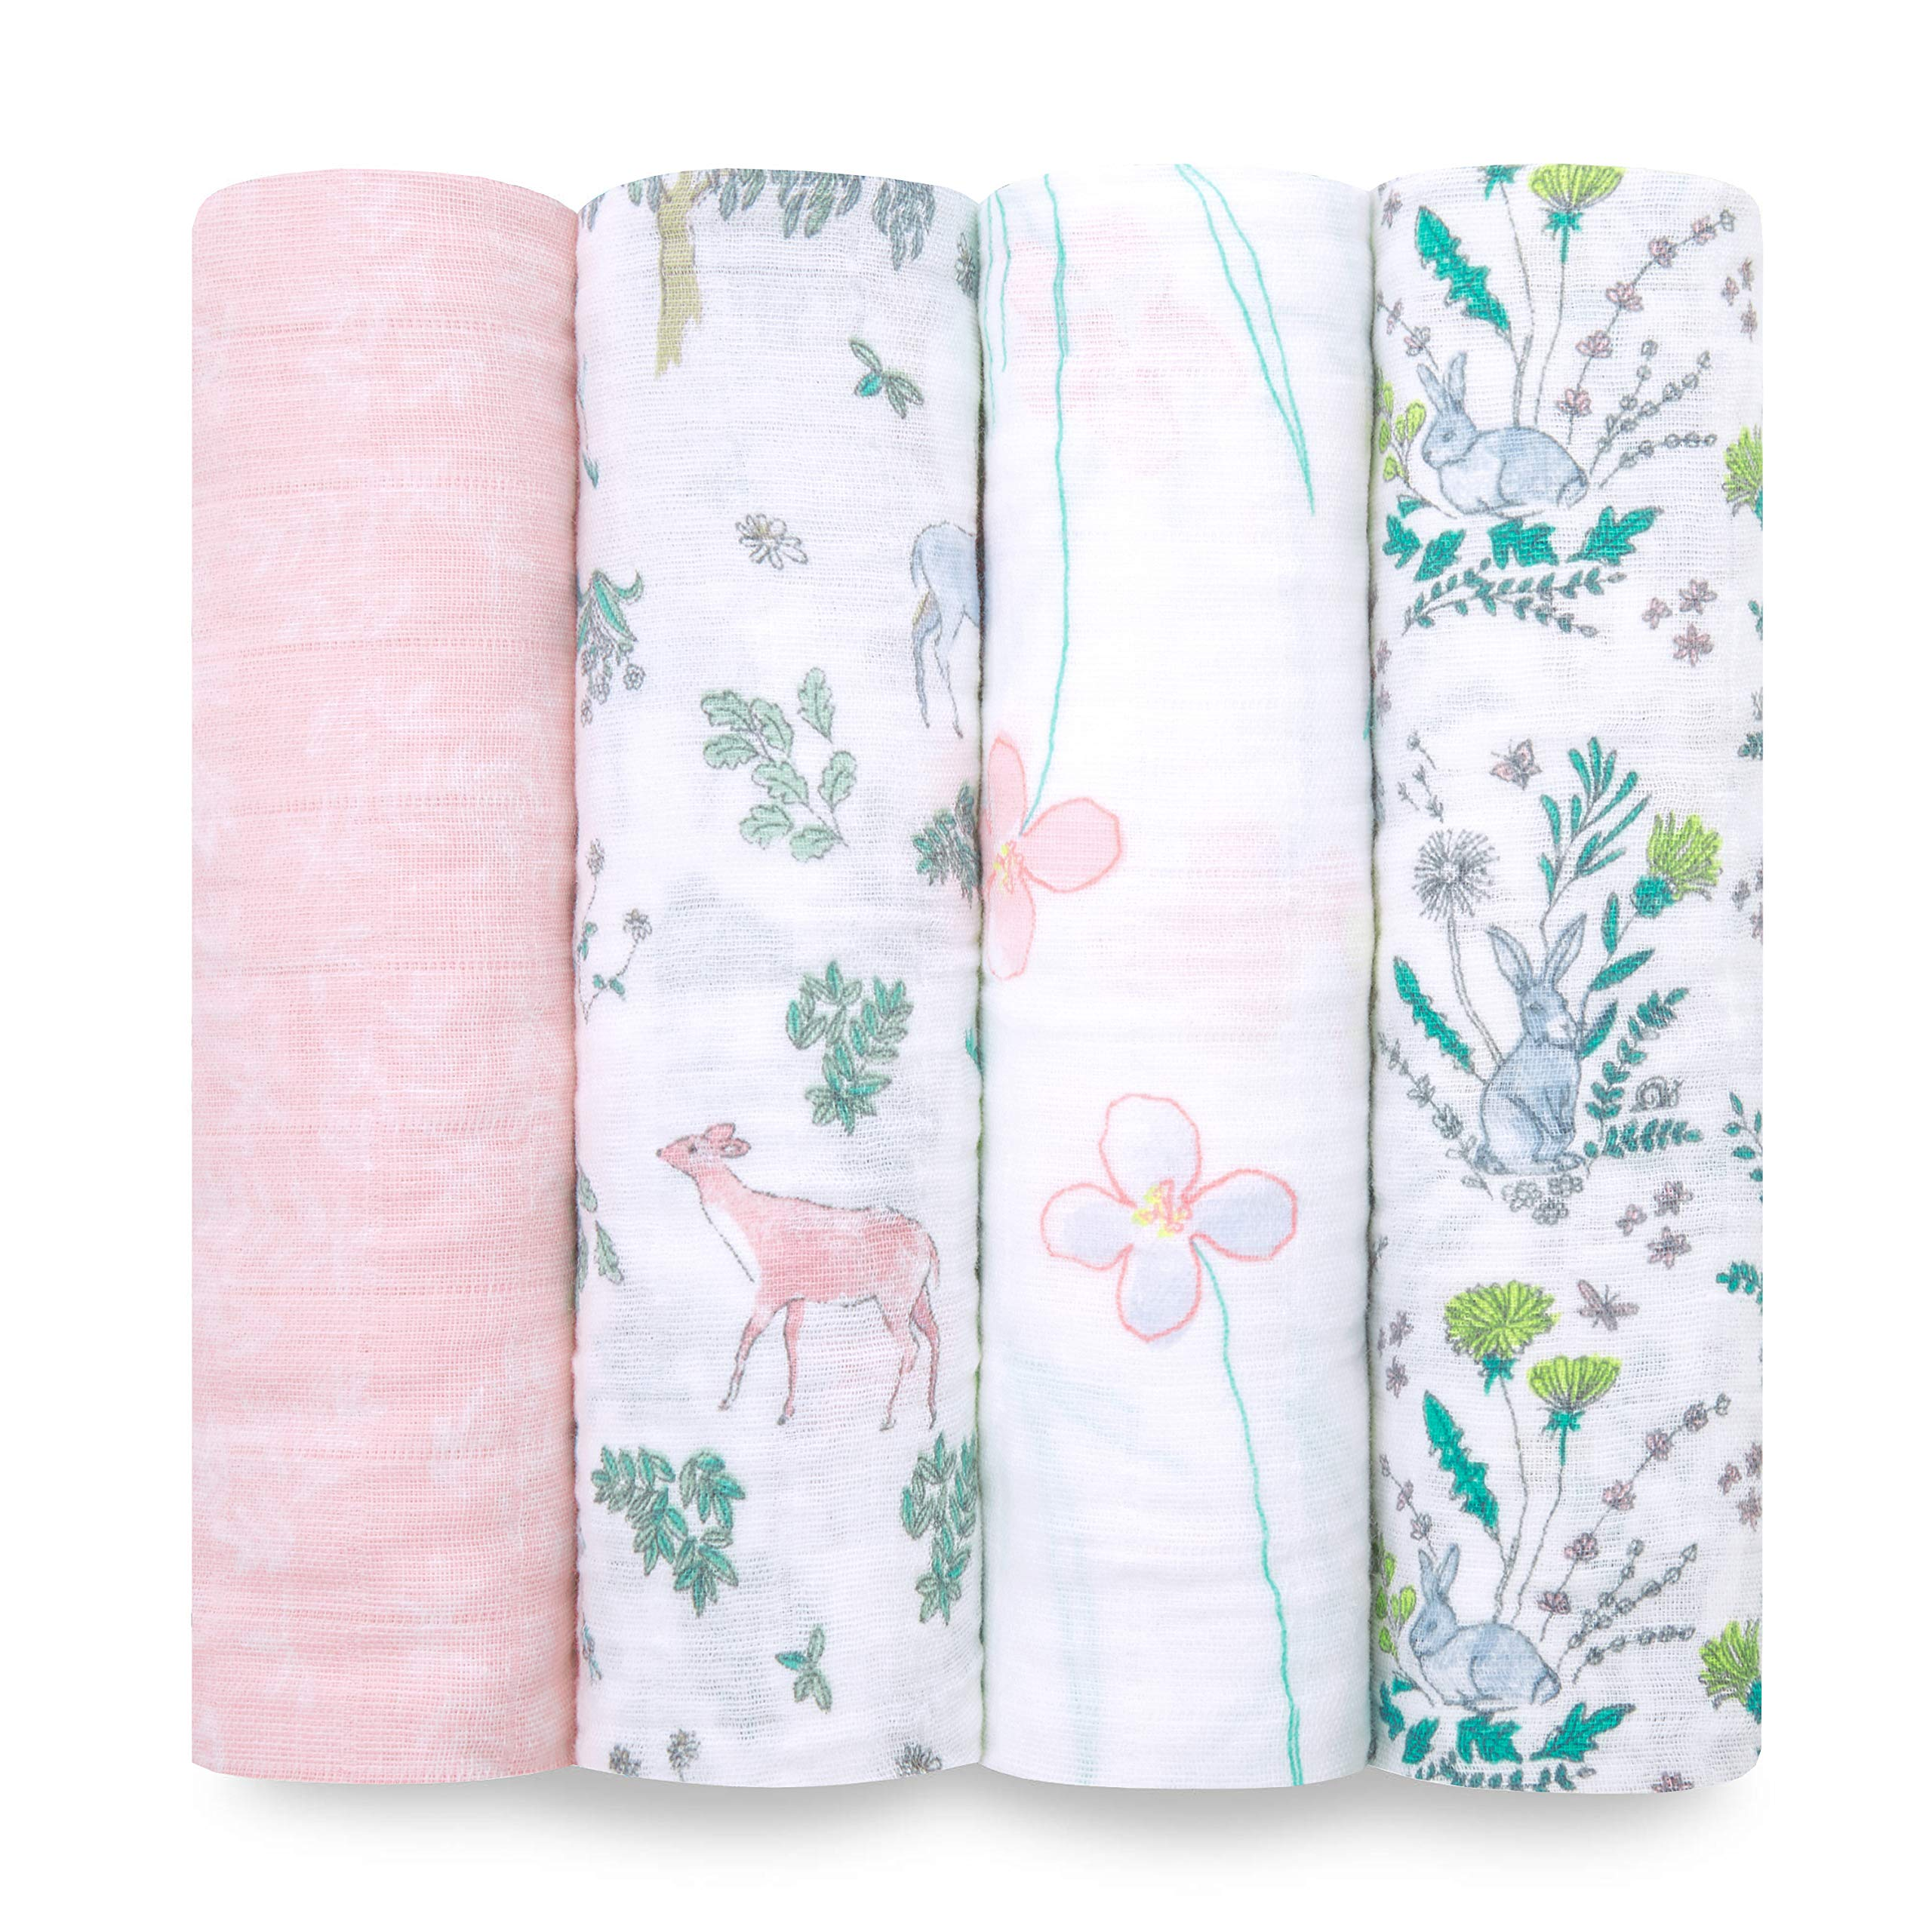 aden + anais Swaddle Blanket | Boutique Muslin Blankets for Girls & Boys | Baby Receiving Swaddles | Ideal Newborn & Infant Swaddling Set | Perfect Shower Gifts, 4 Pack, Forest Fantasy by aden + anais